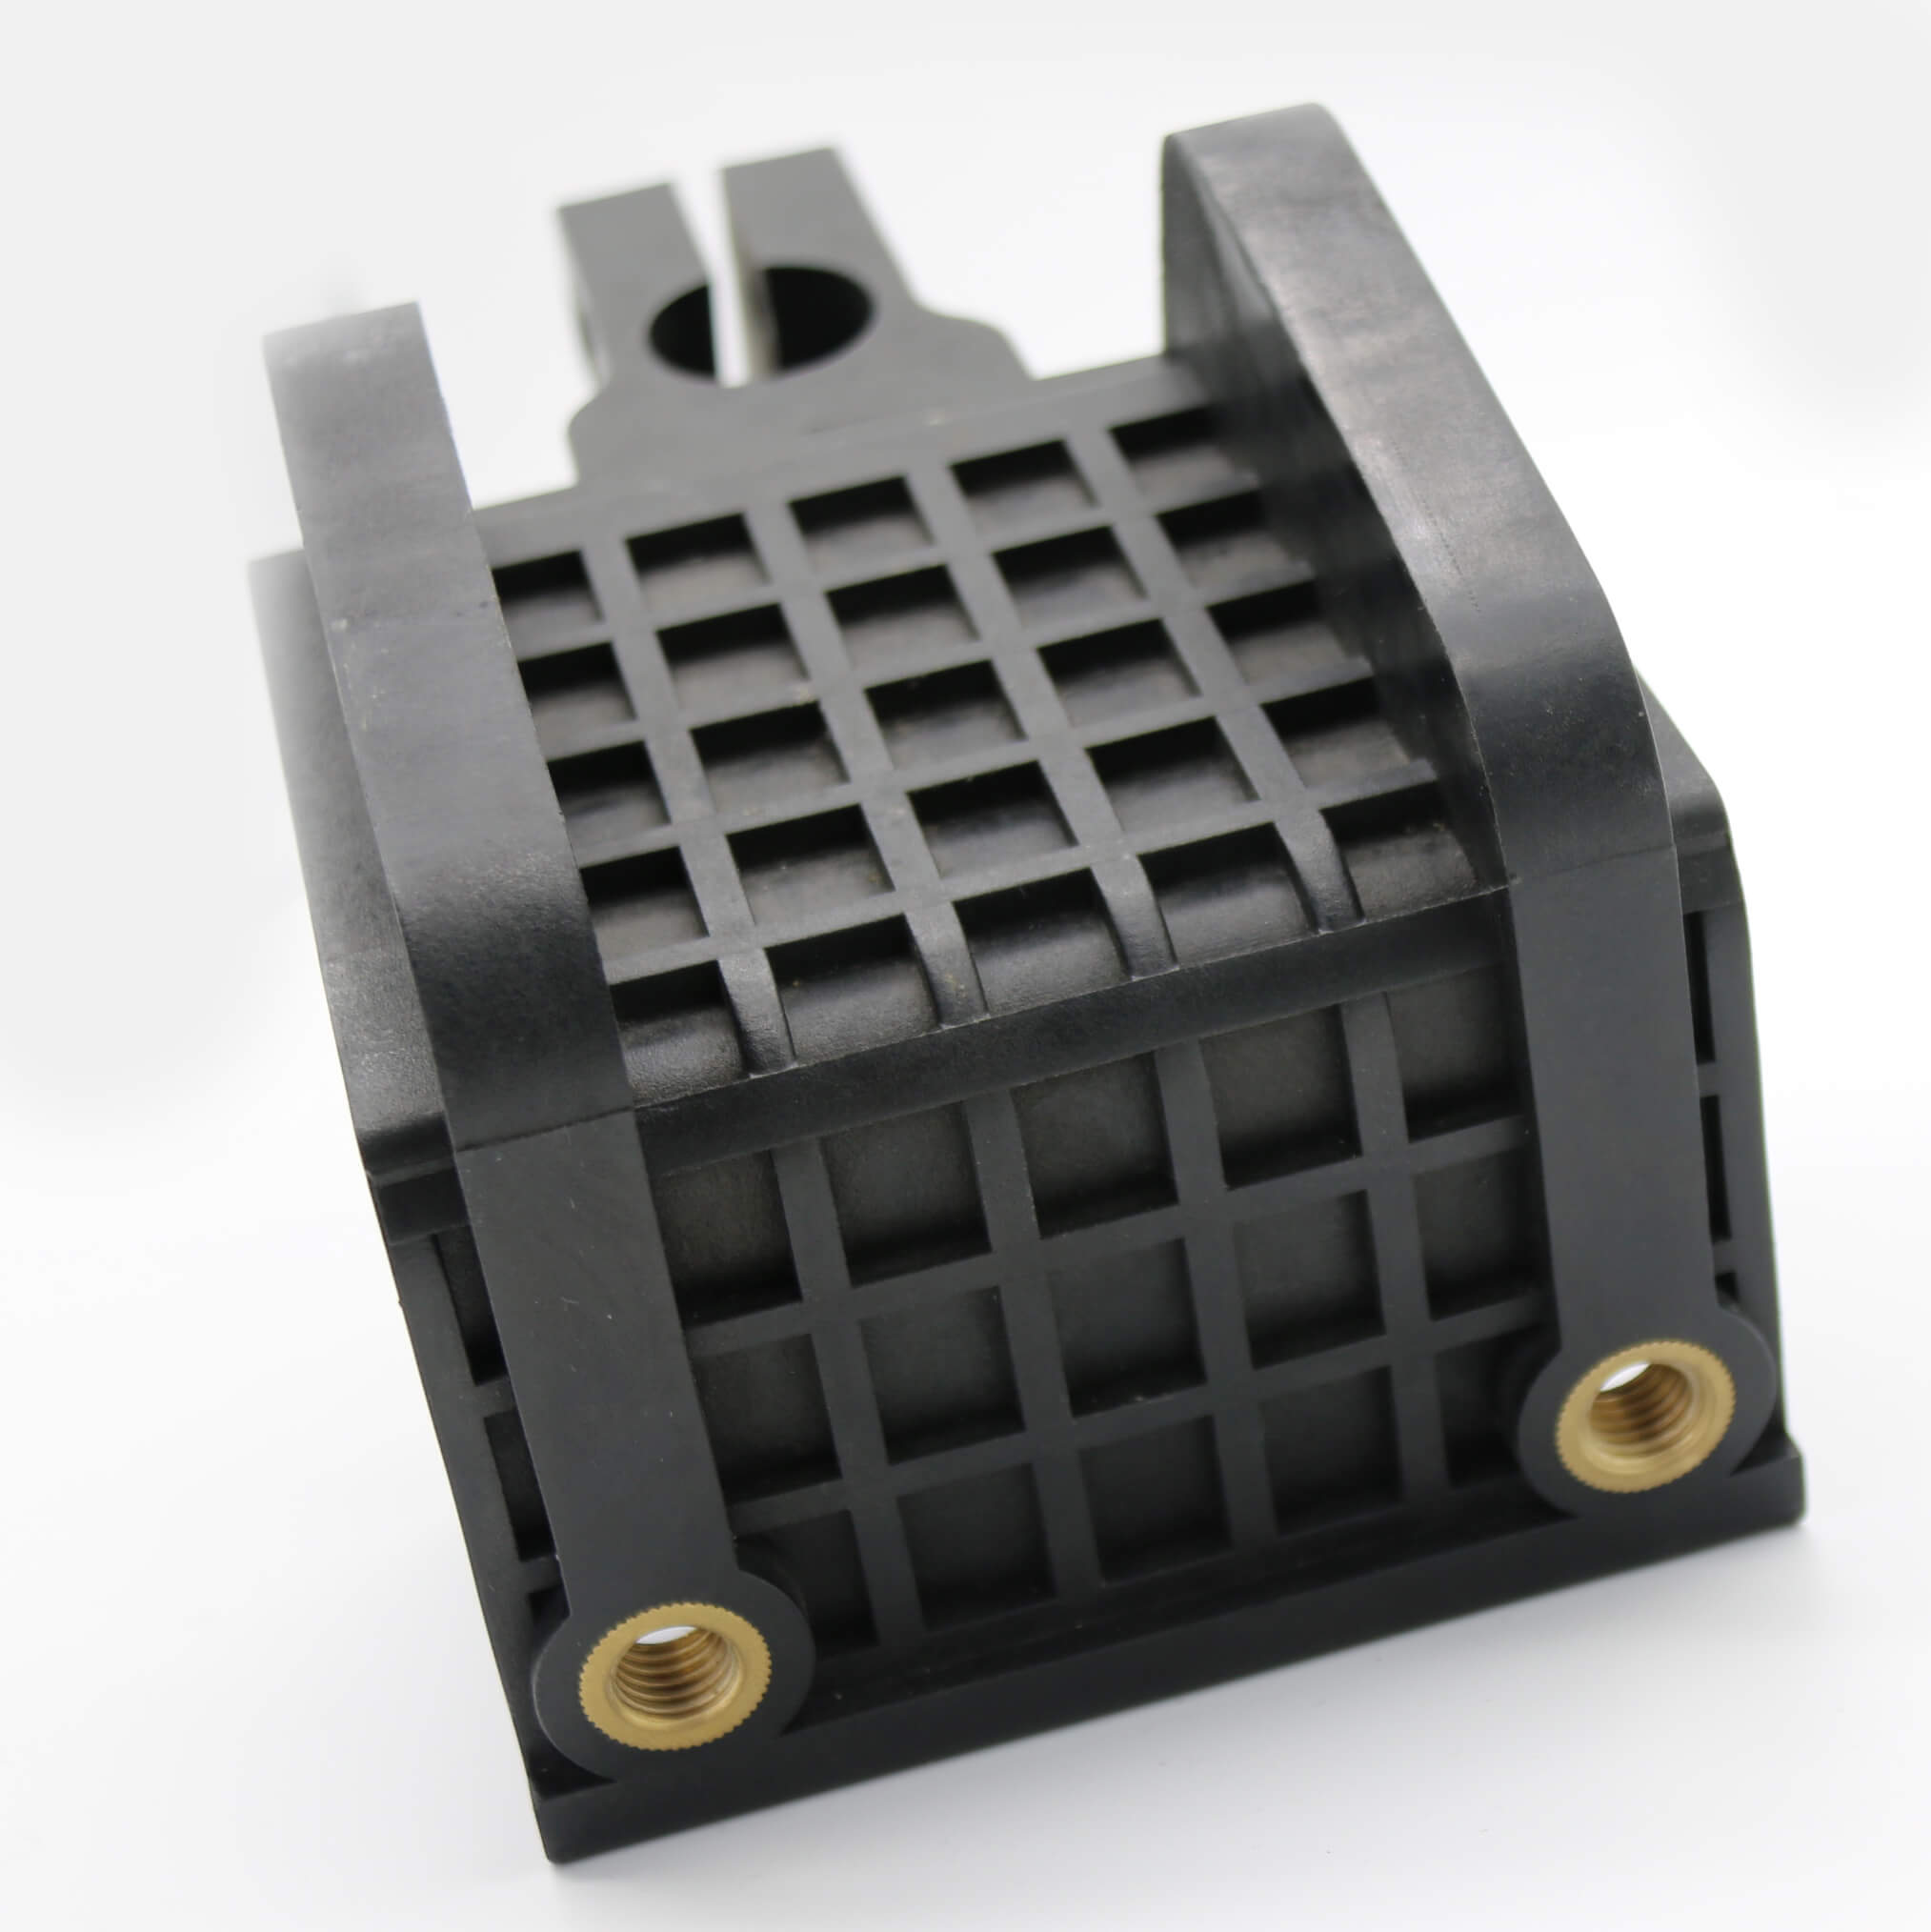 Plastic parts with threaded inserts